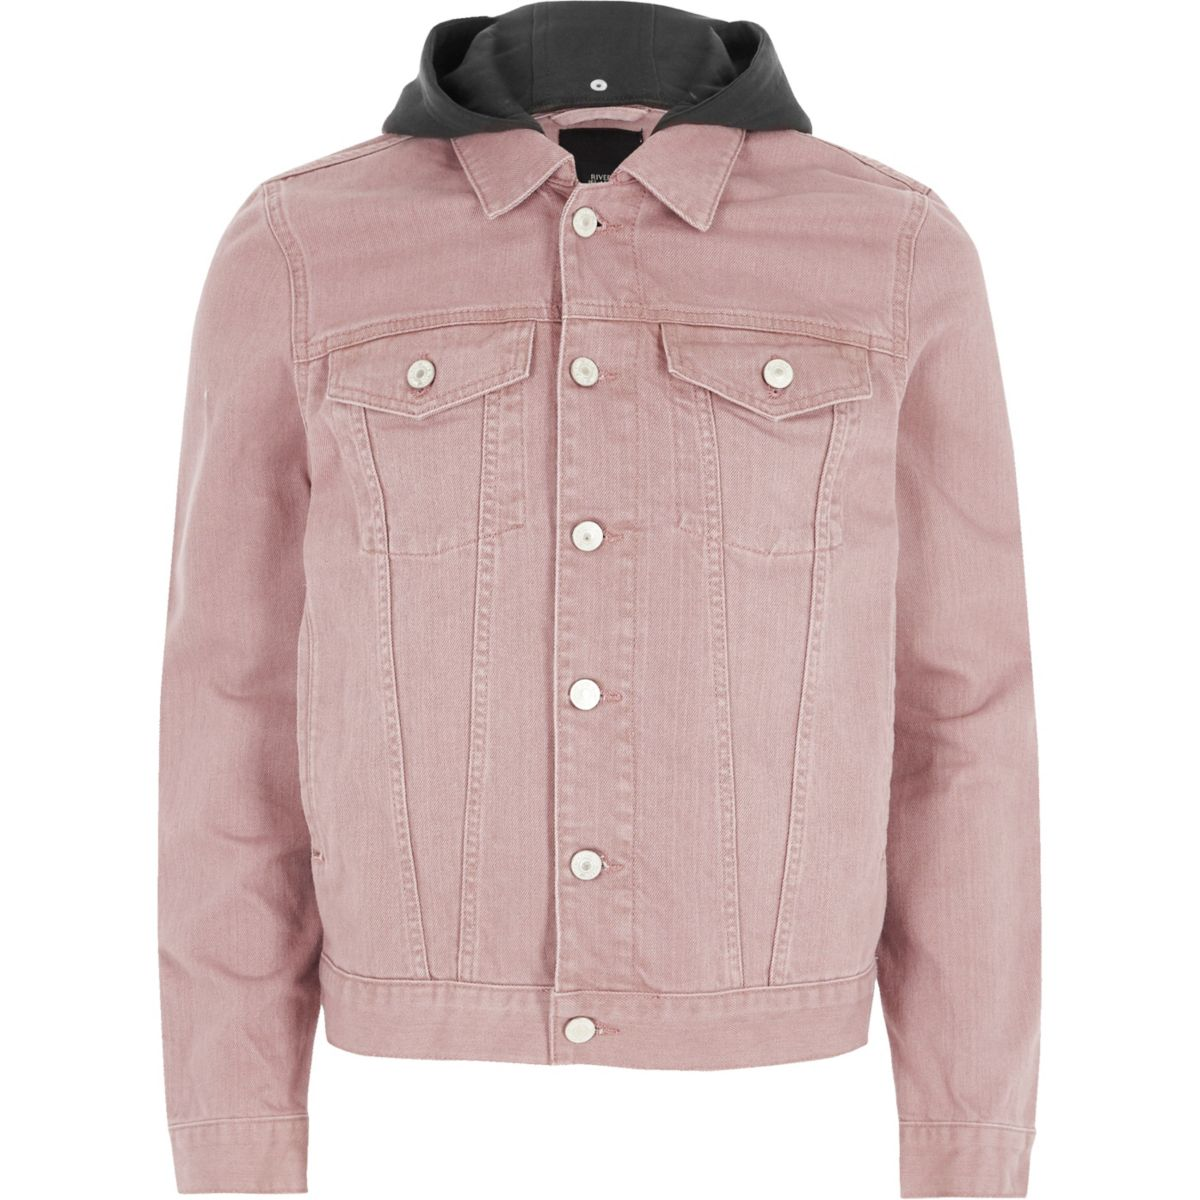 Washed pink hooded denim jacket